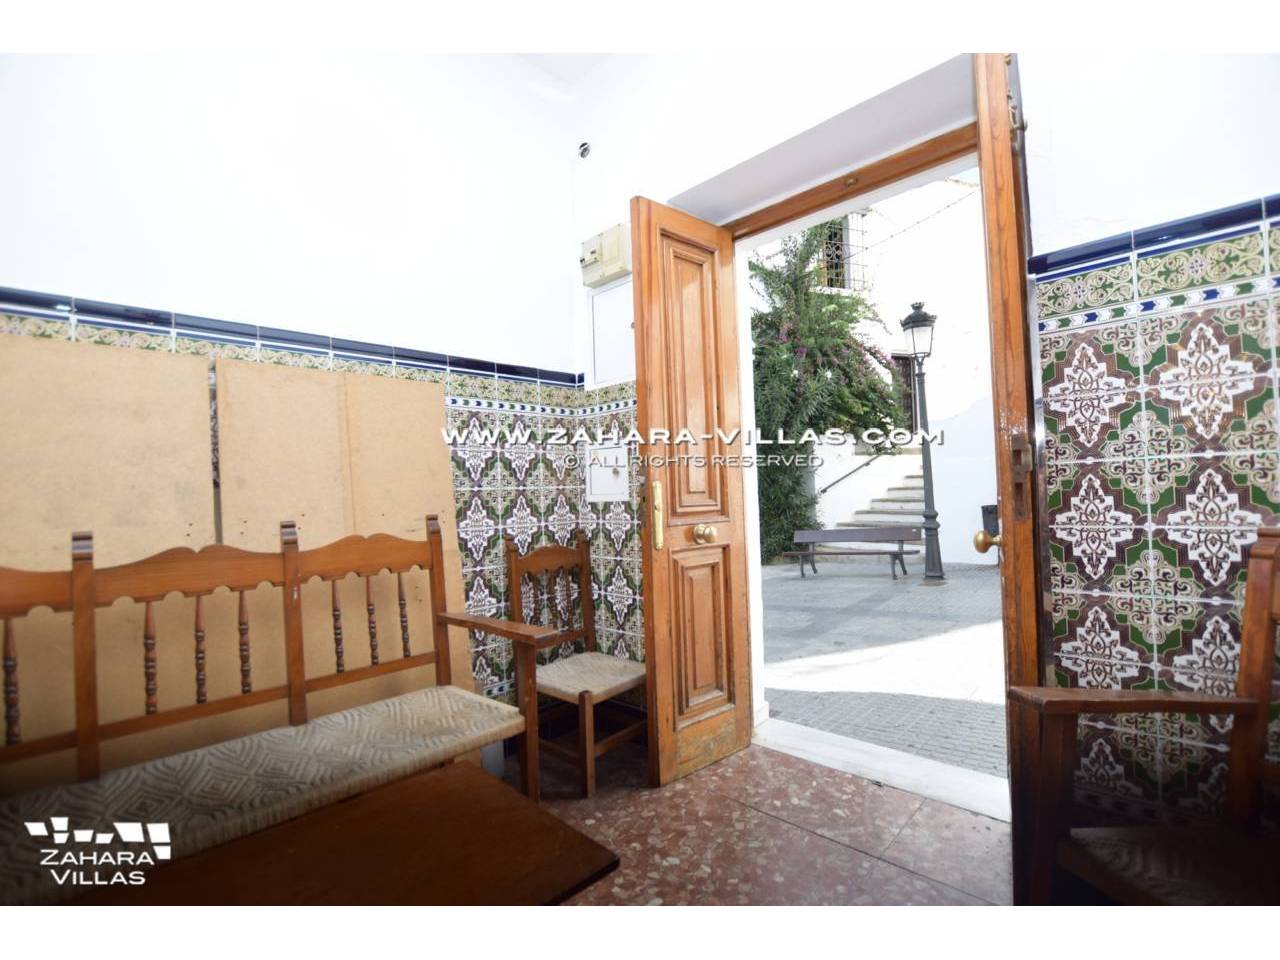 Imagen 2 de House for sale located in pedestrian street of Vejer de la Frontera